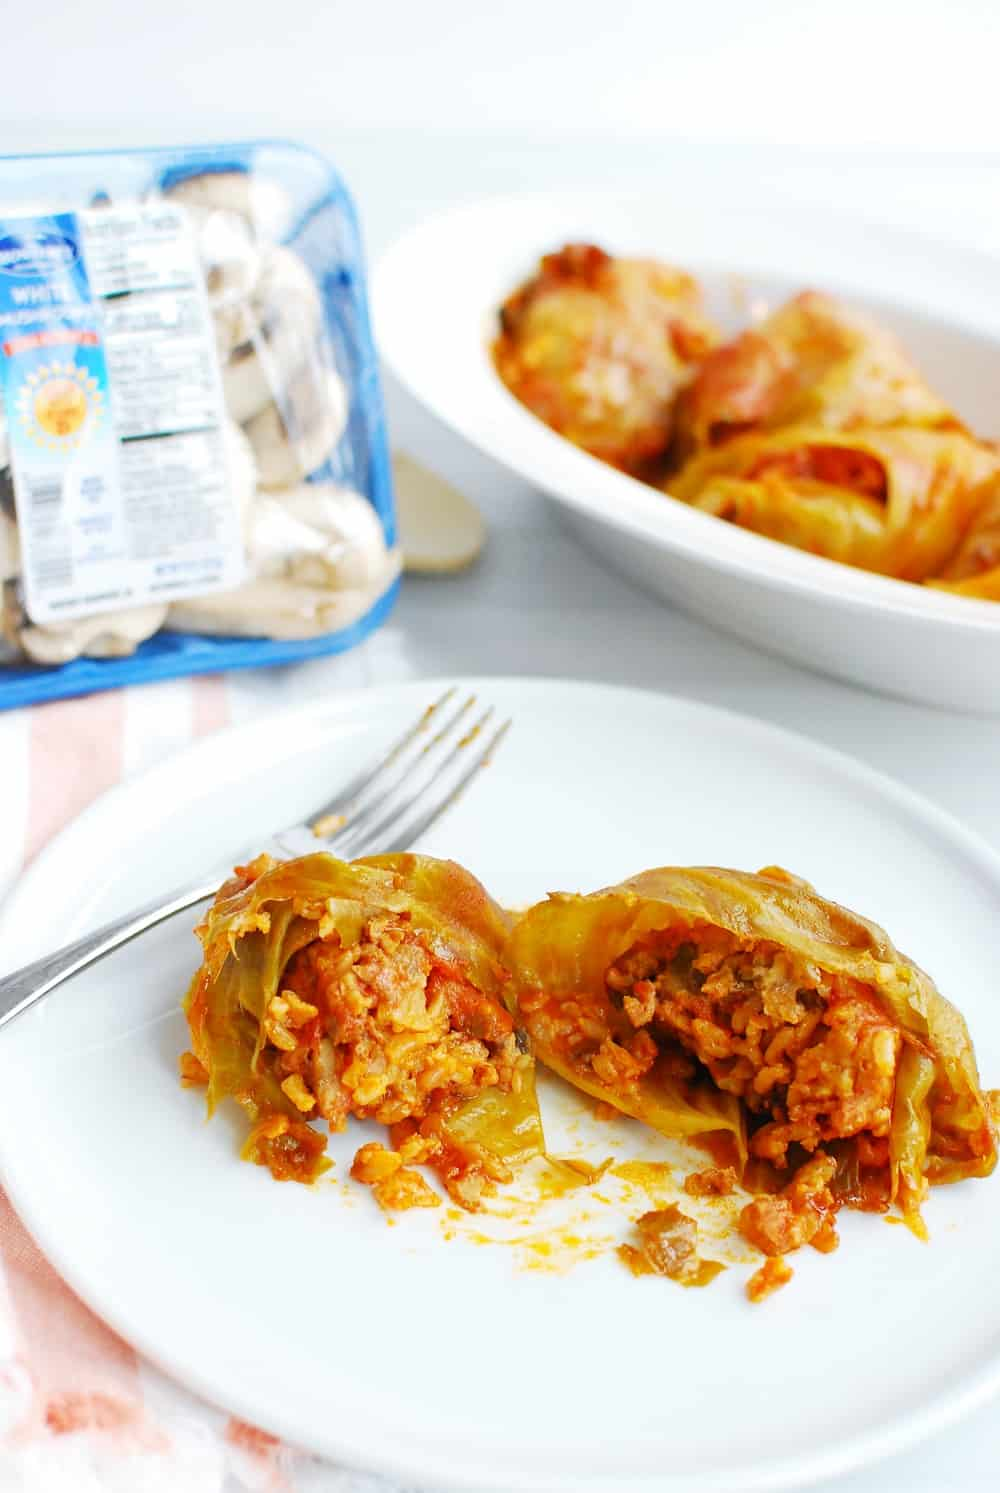 a Hungarian stuffed cabbage roll that's been cut in half